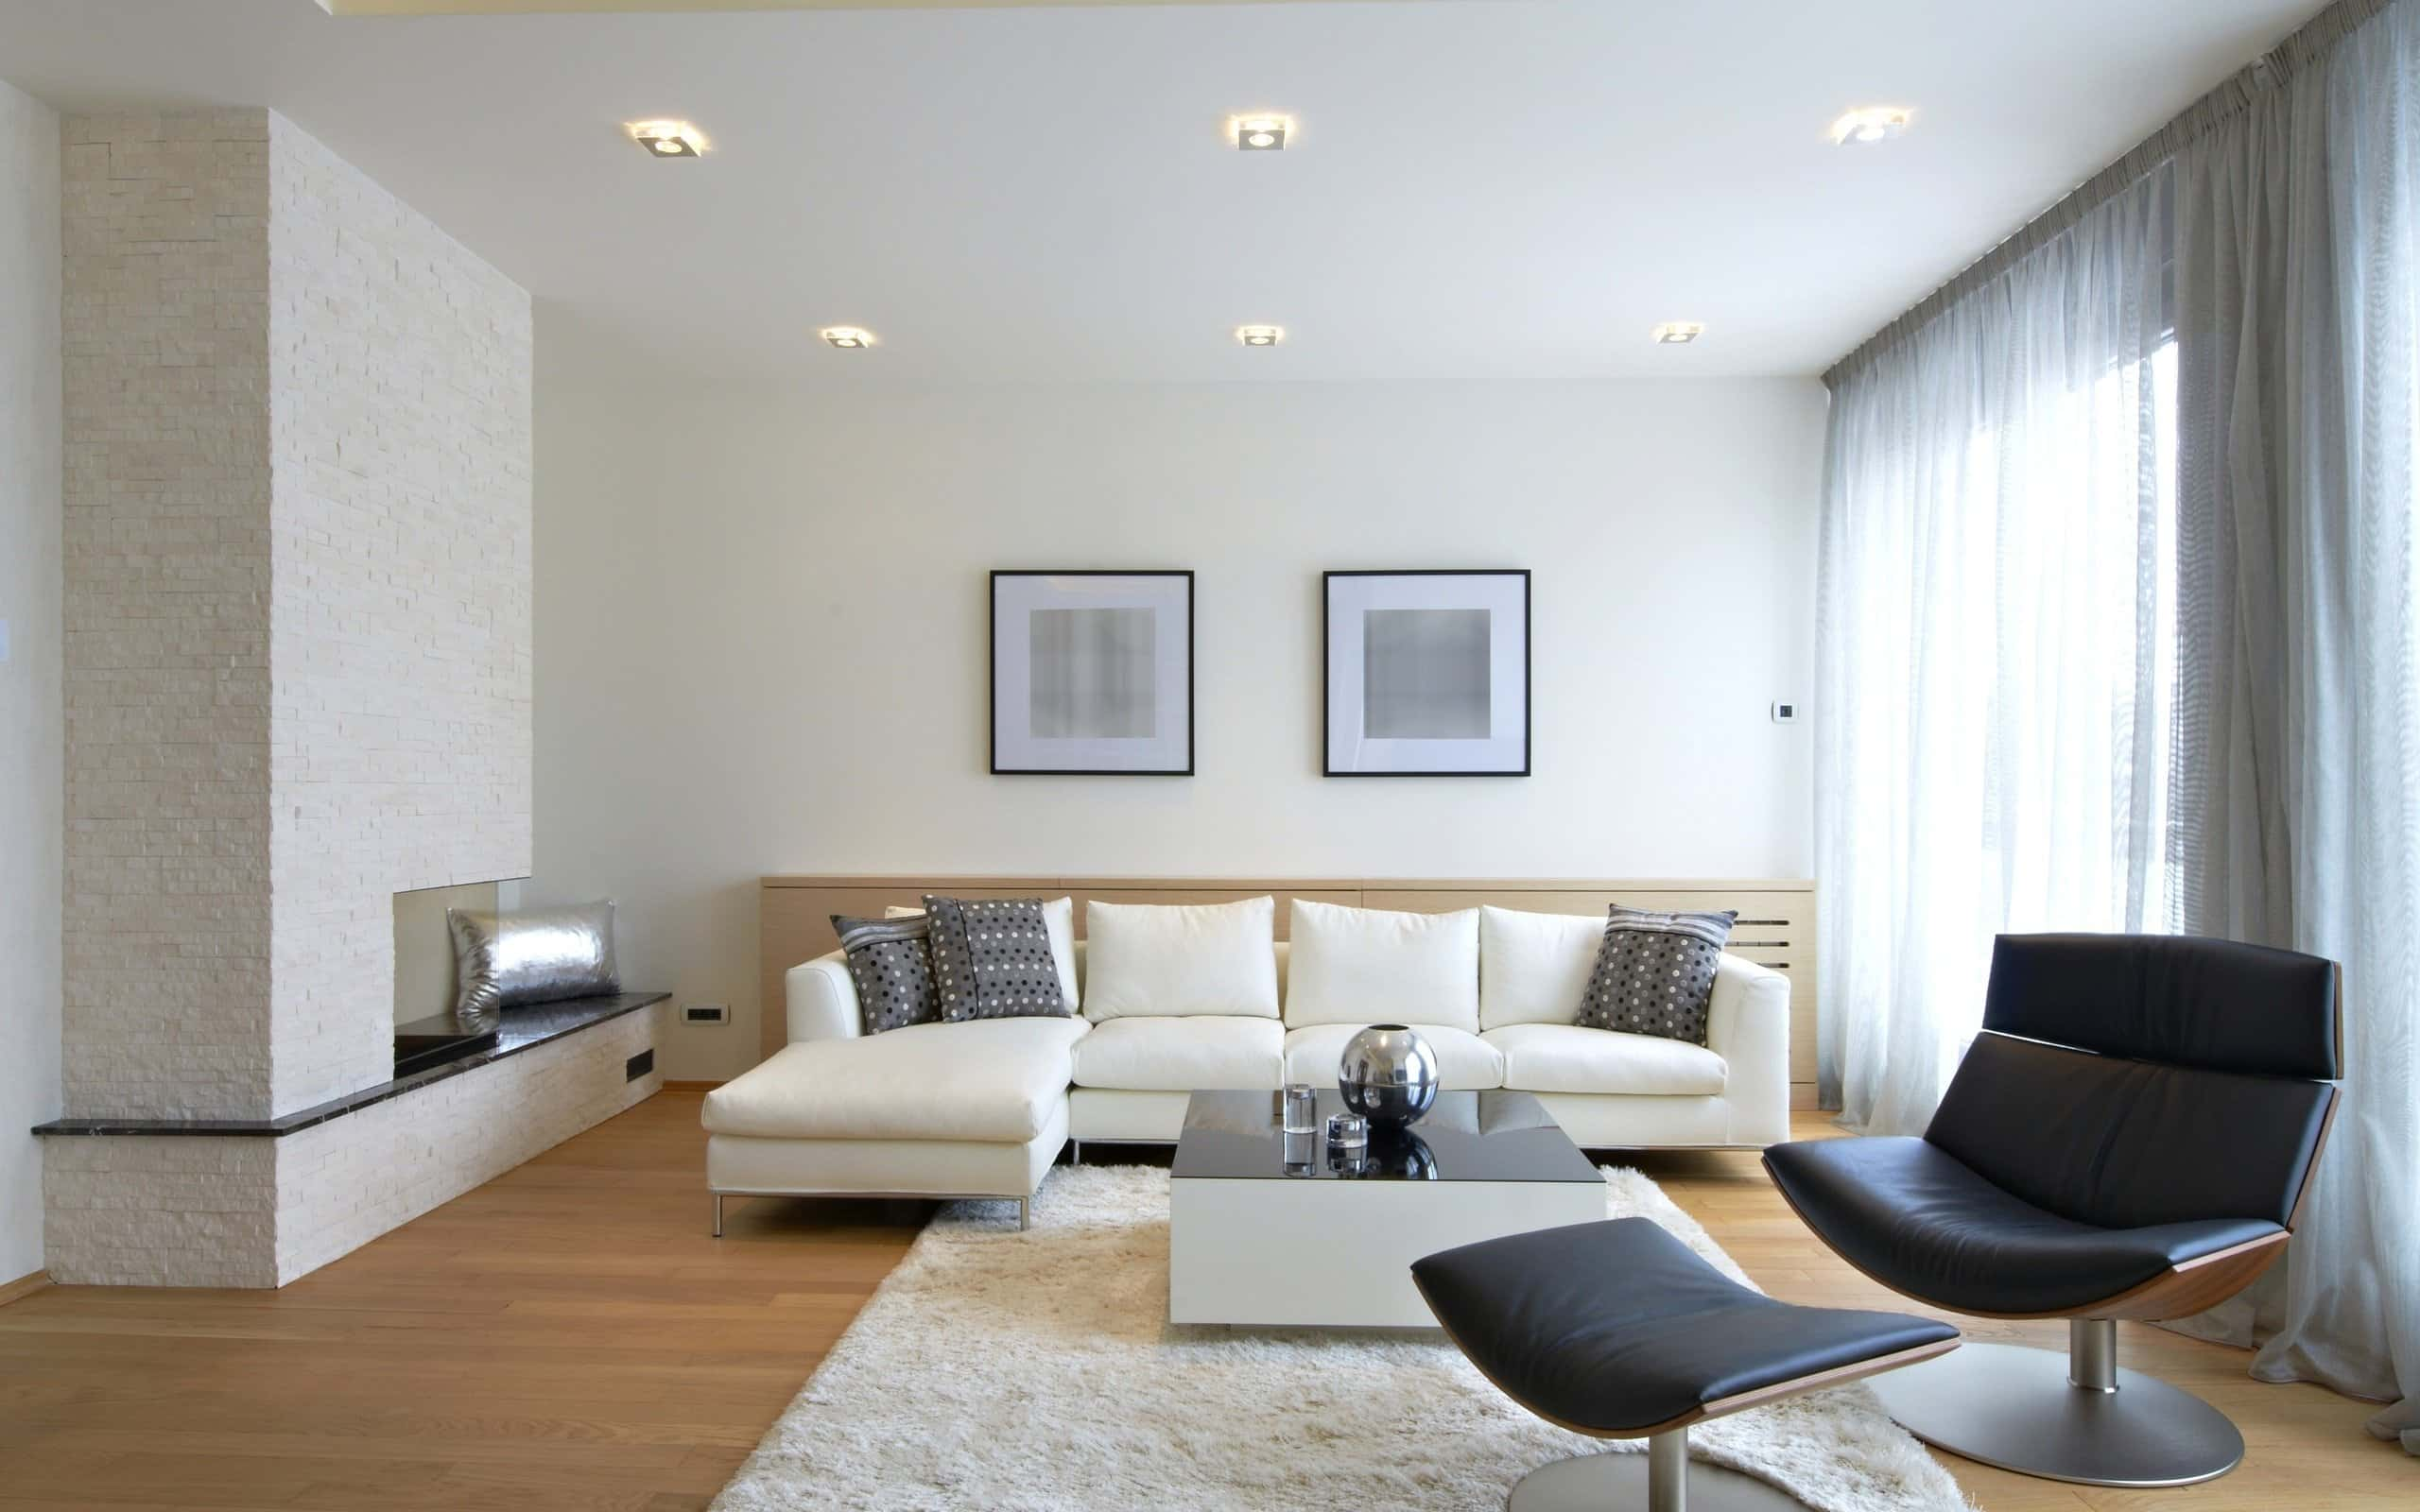 White Wallpaper Interior Design Ideas. Great combination of pastel walls, white ceiling and laminated floor